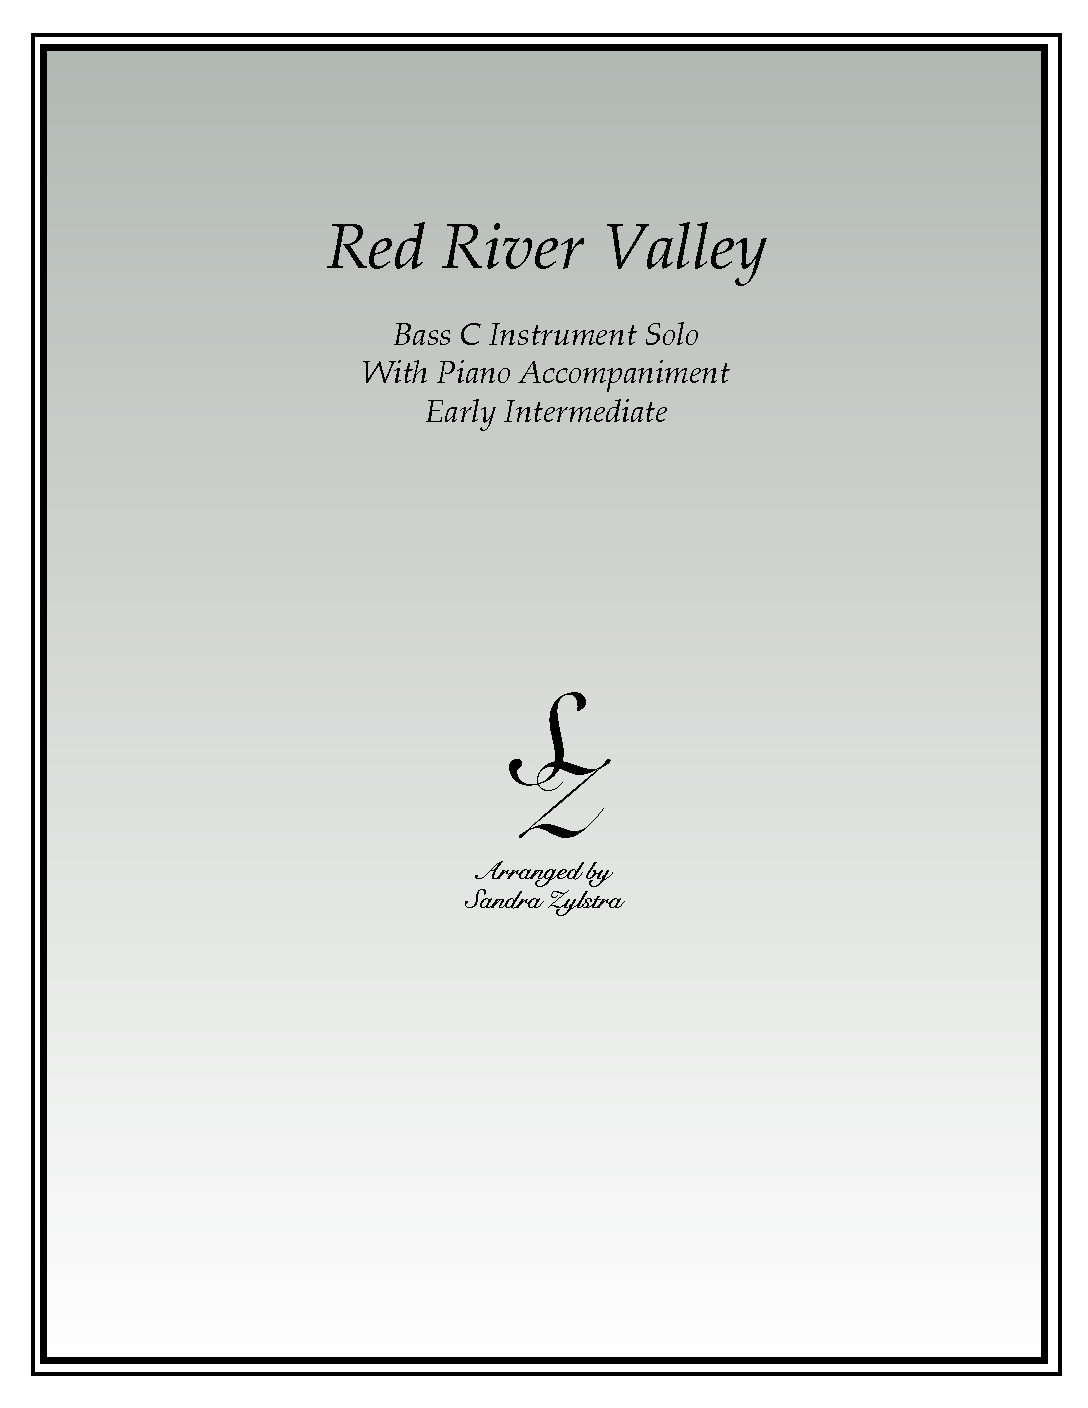 Red River Valley -Bass C Instrument Solo